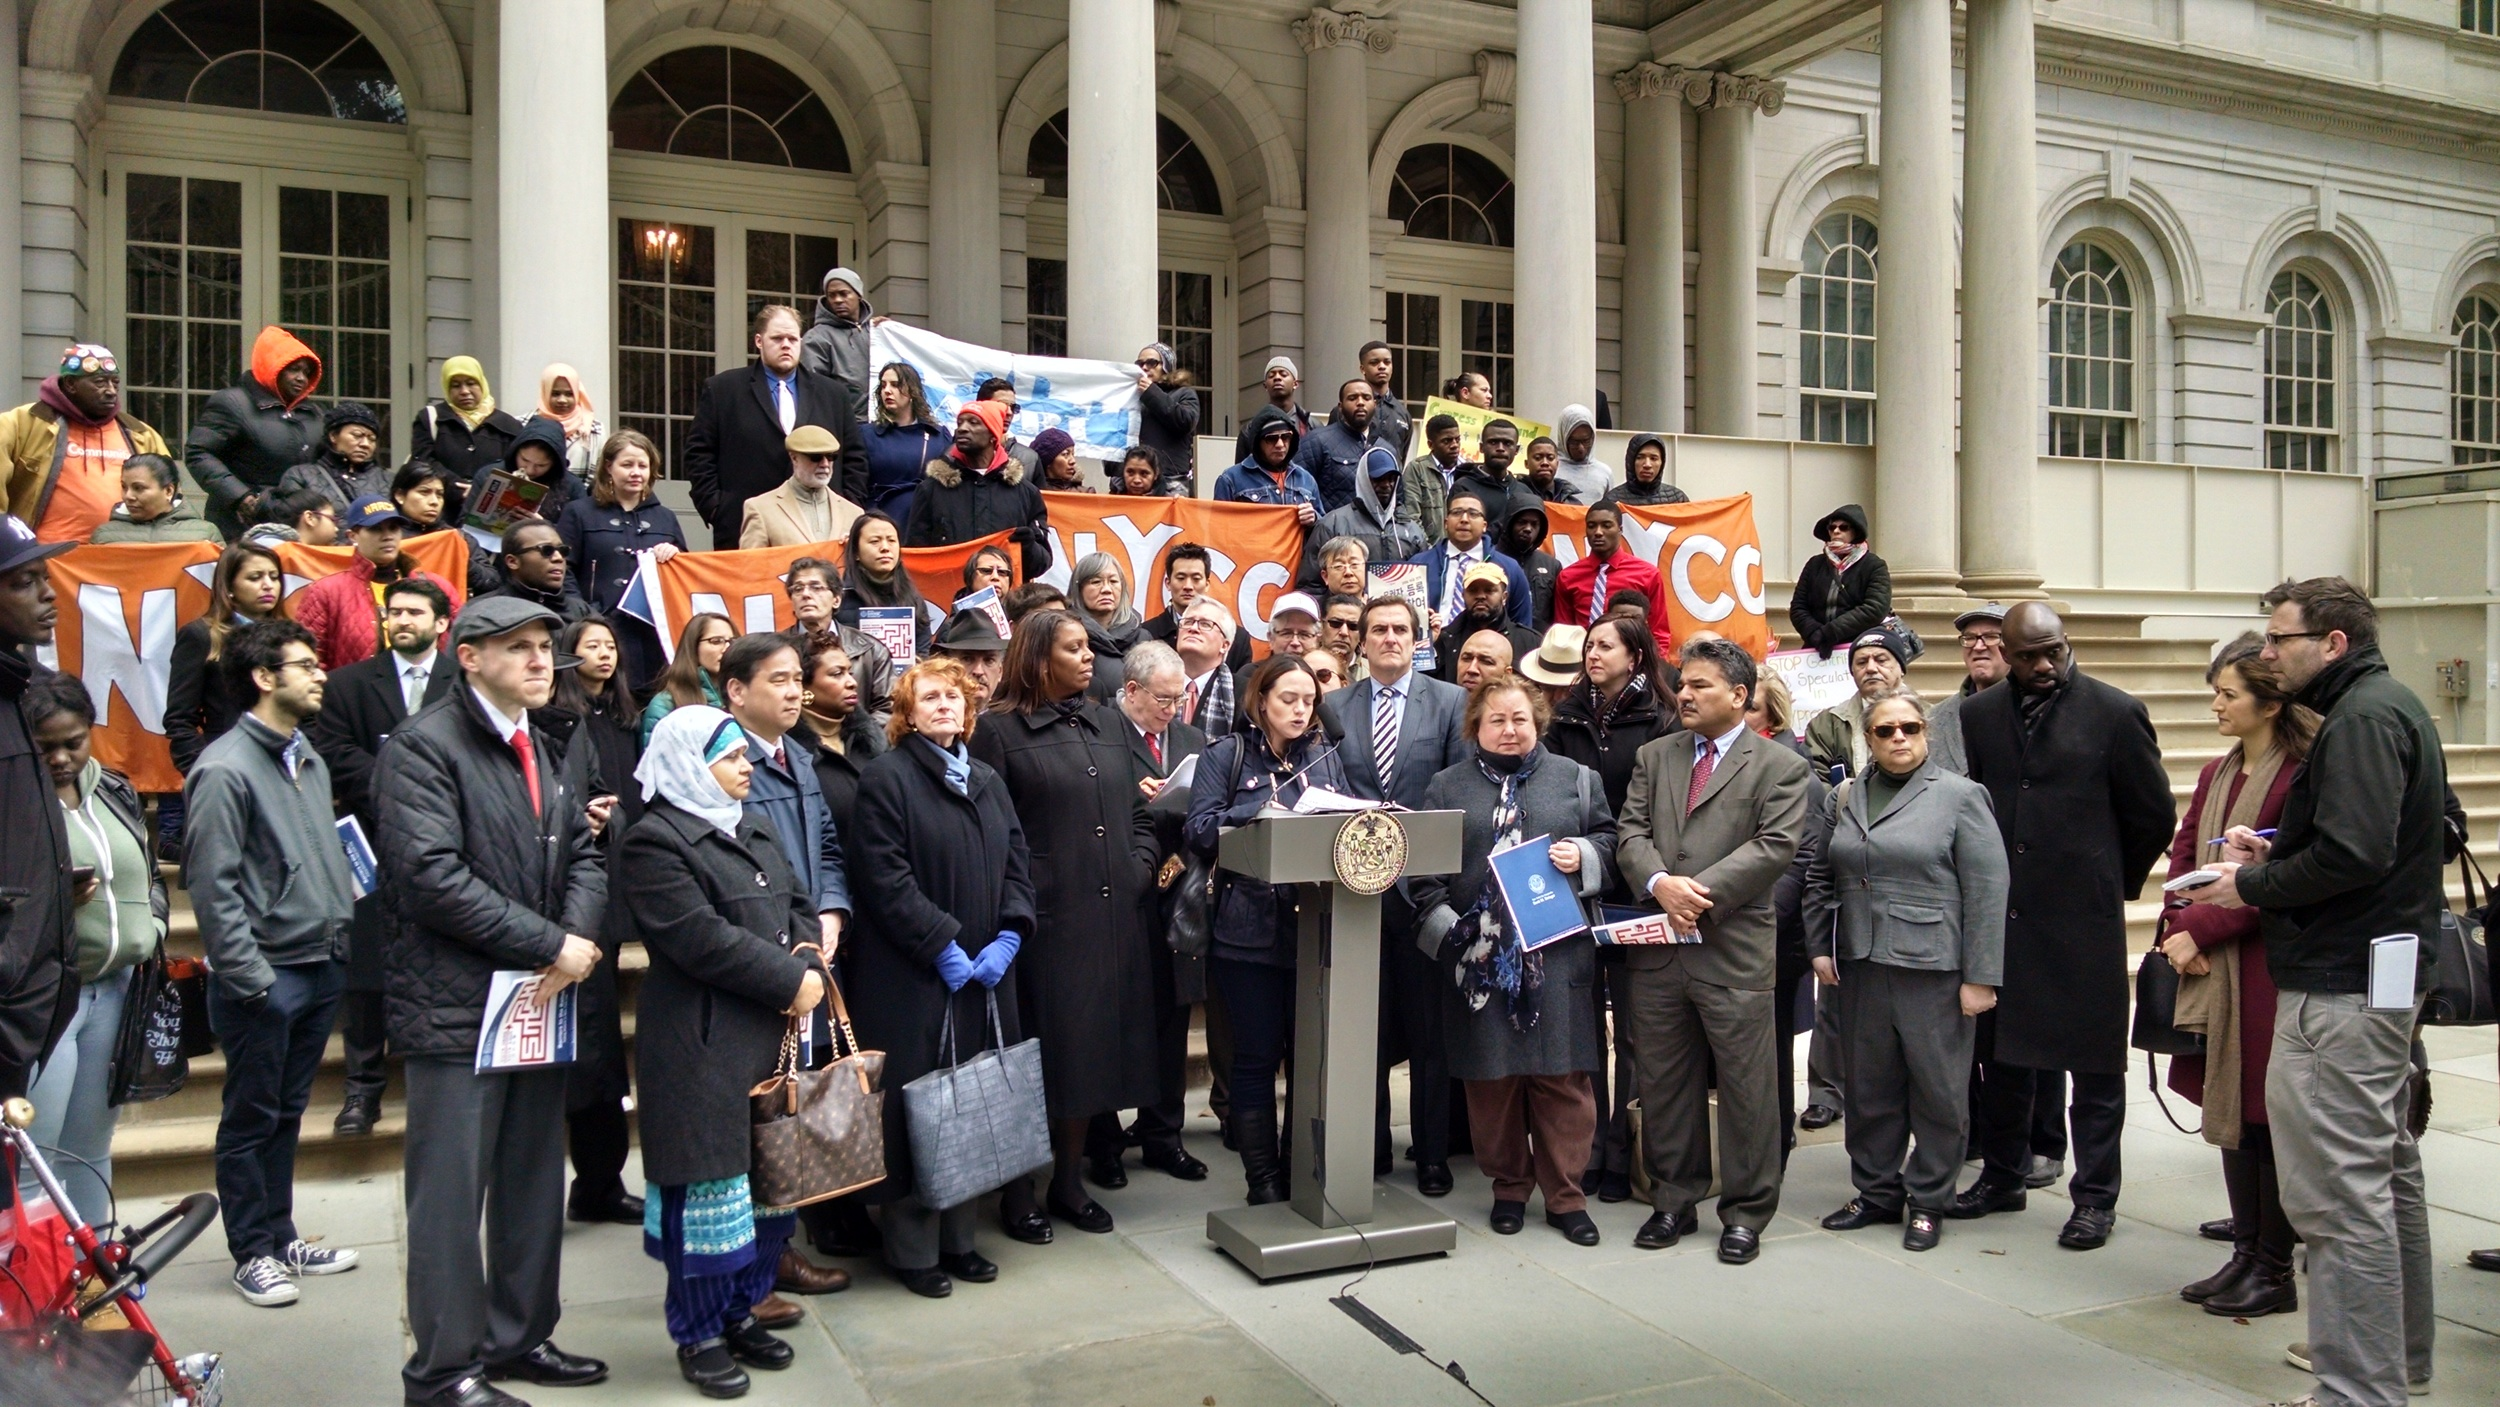 Press Conference hosted by NYC Comptroller Scott Stringer on Board of Elections Reforms.